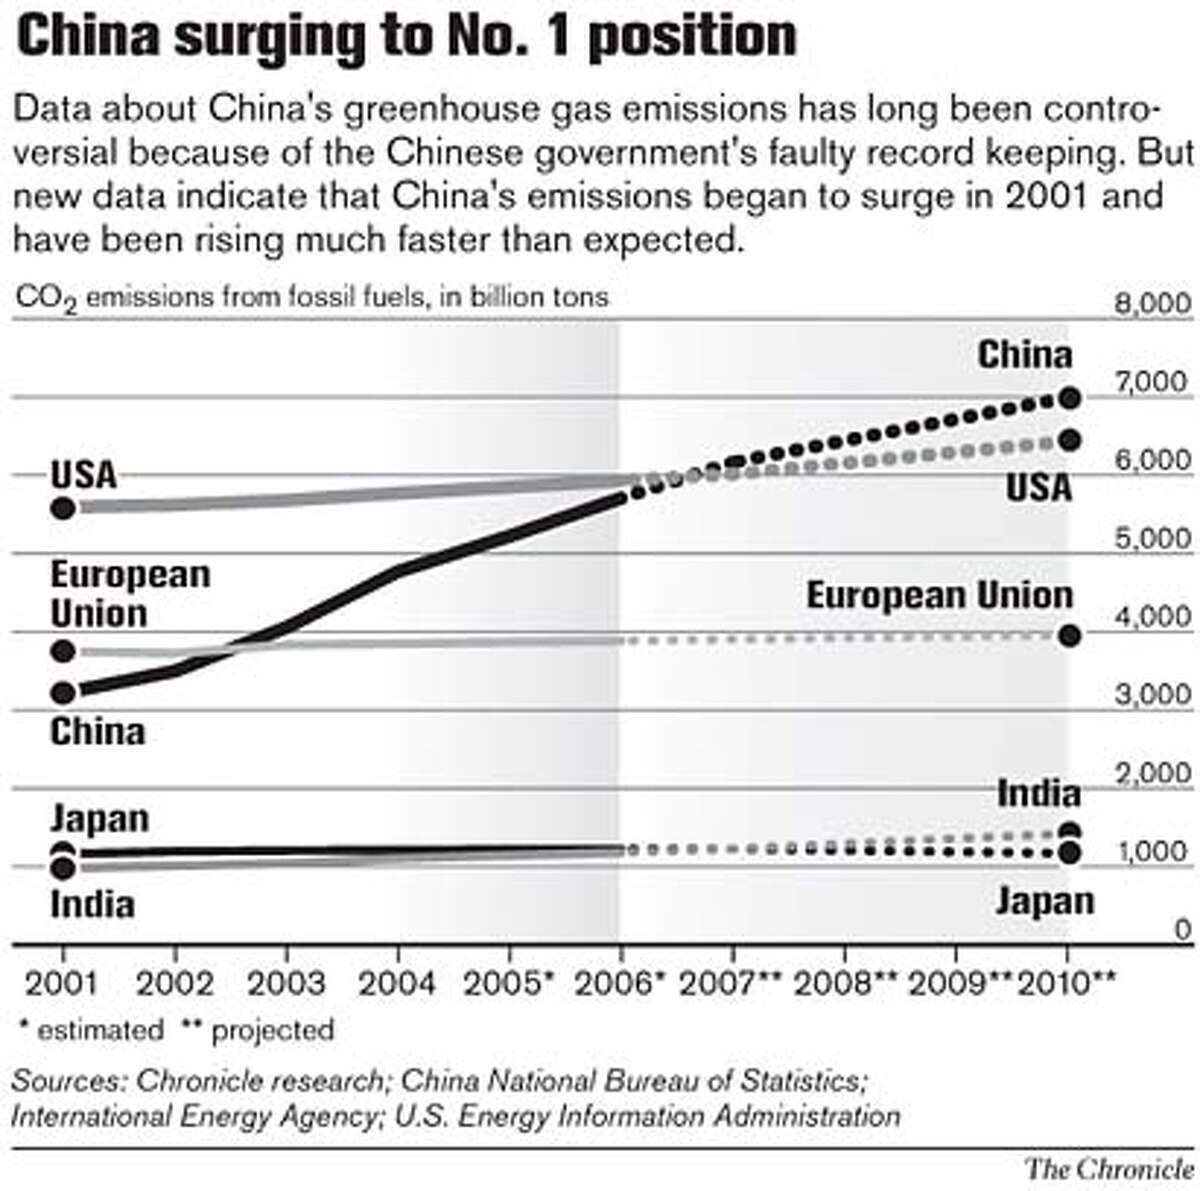 China Surging to No. 1 Position. Chronicle Graphic